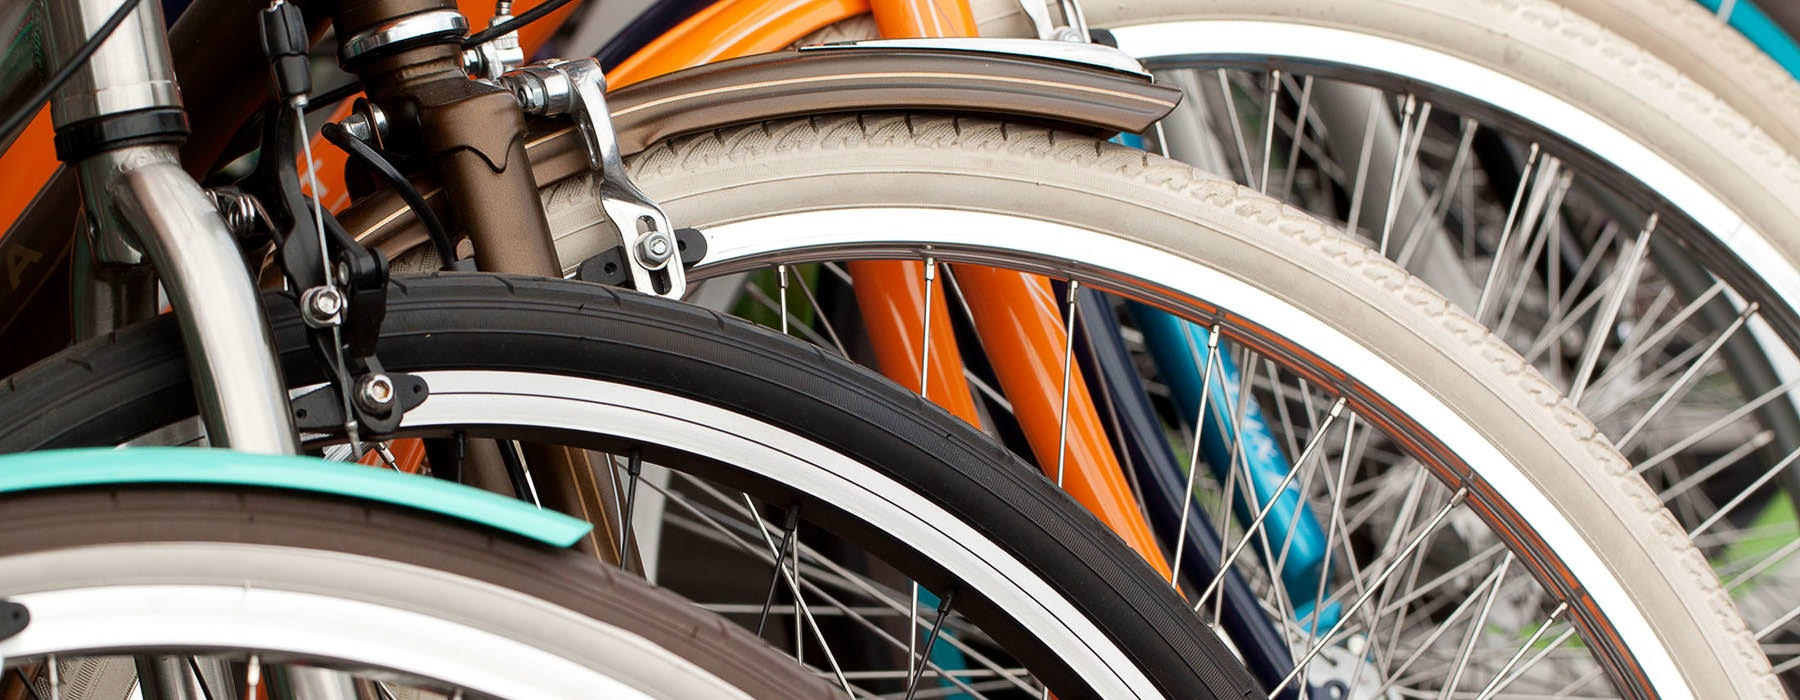 close up of the front tires of bicycles lined up in a row